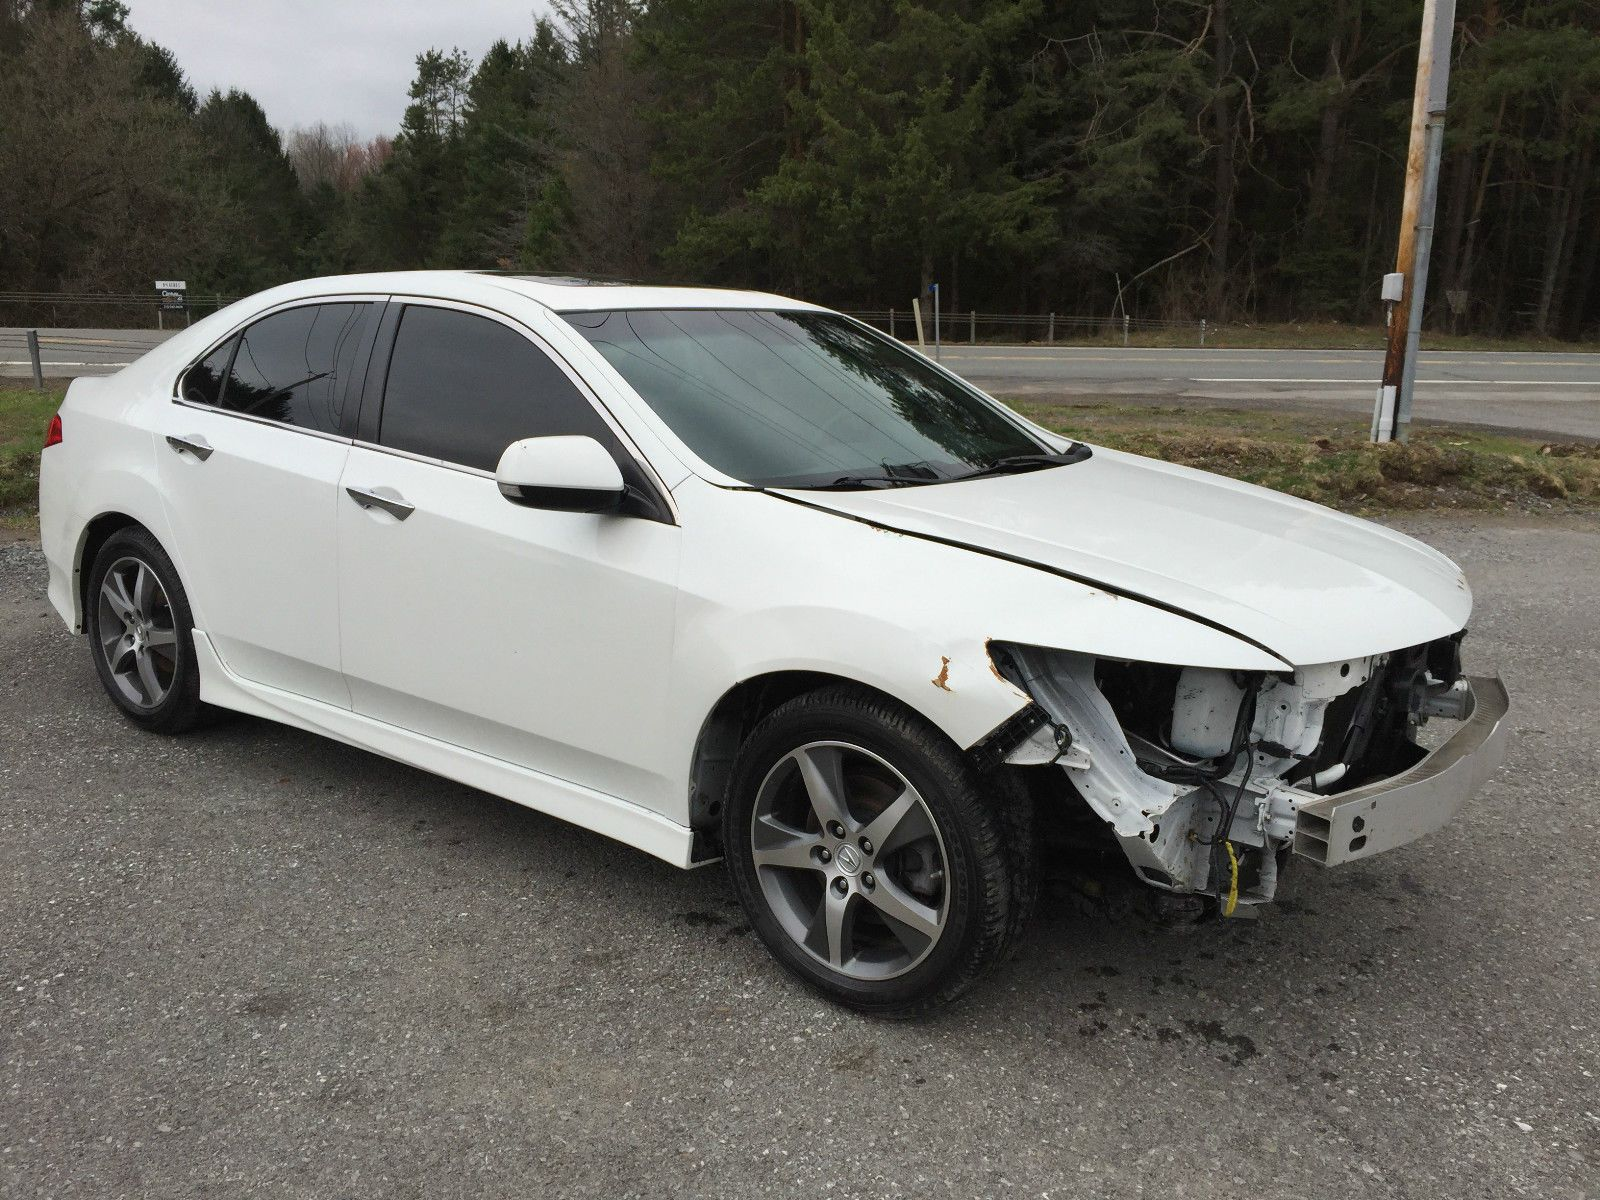 Special Edition 2012 Acura Tsx 4 Door Repairable Wrecked Acura Tsx Acura Sports Cars For Sale